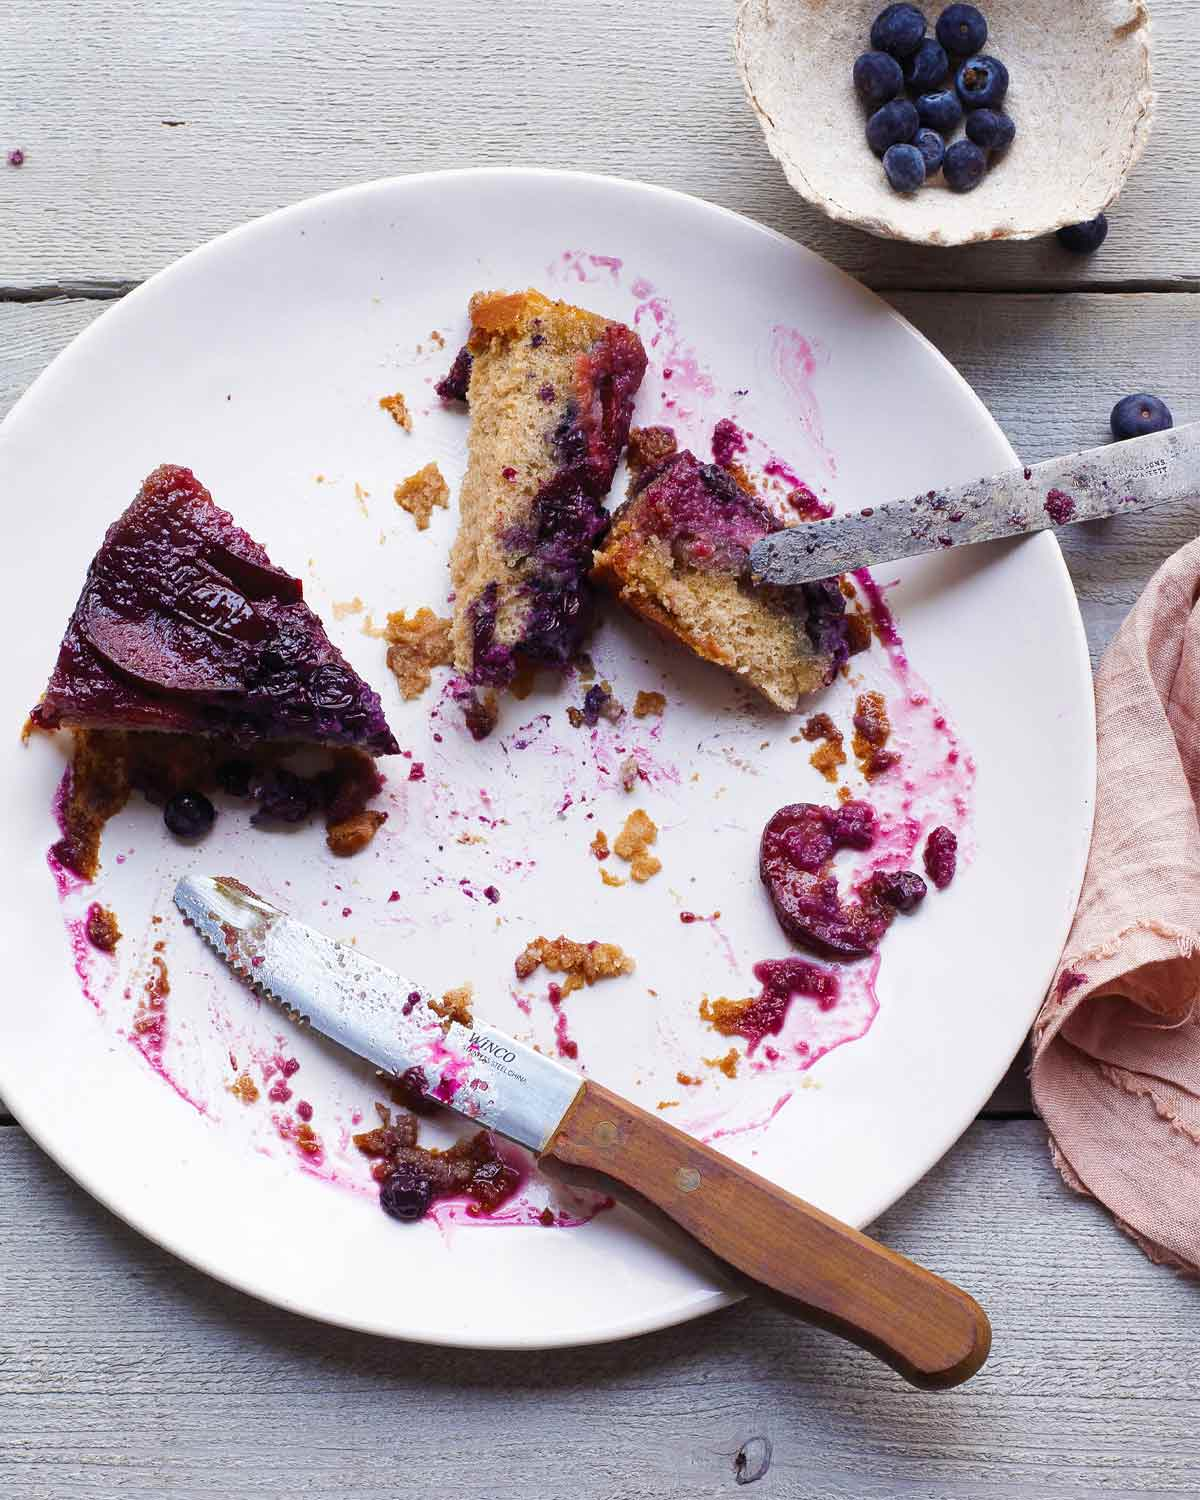 A couple slices of plum-blueberry upside-down cake on a white plate with a knife resting on the edge of the plate.